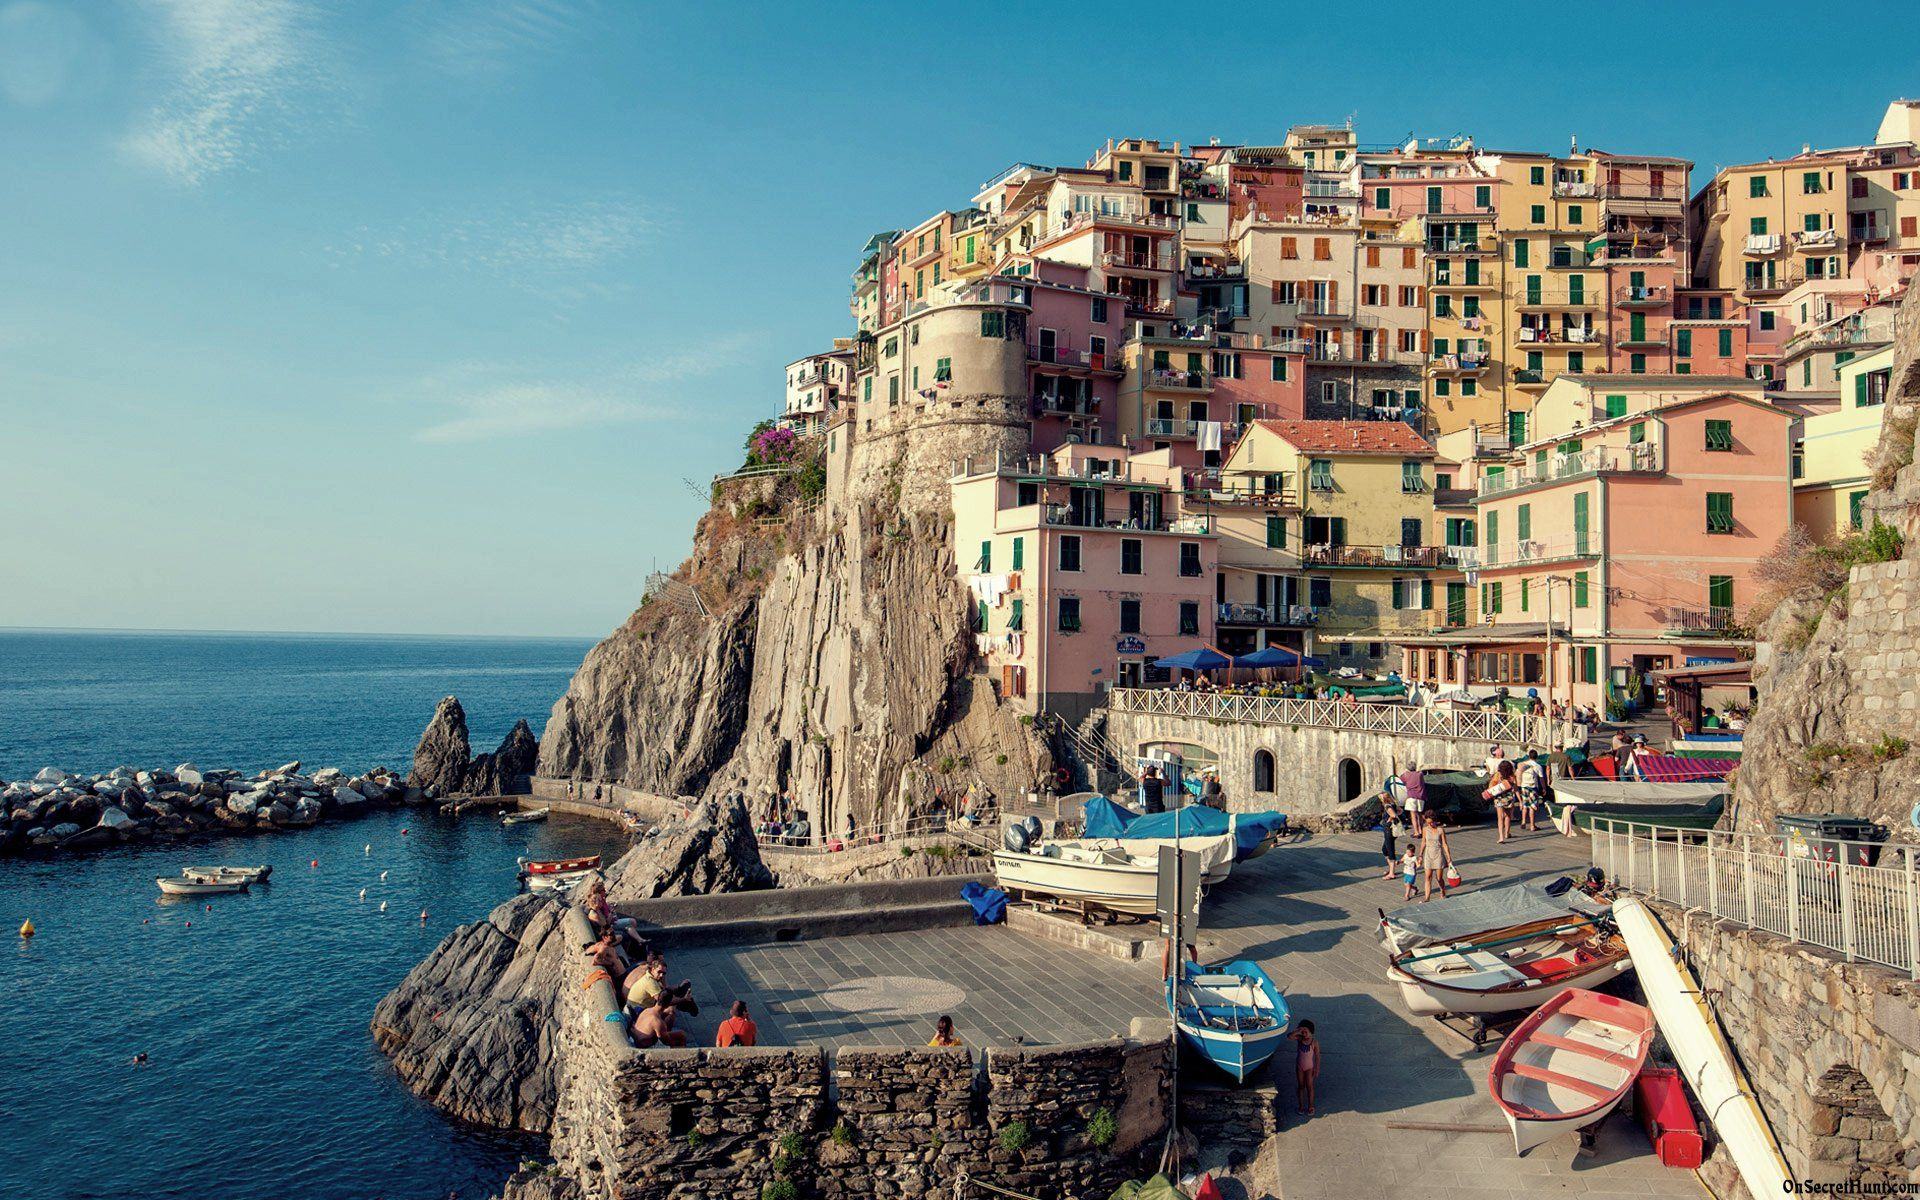 Unique Riomaggiore Wallpaper Widescreen Hd High Quality